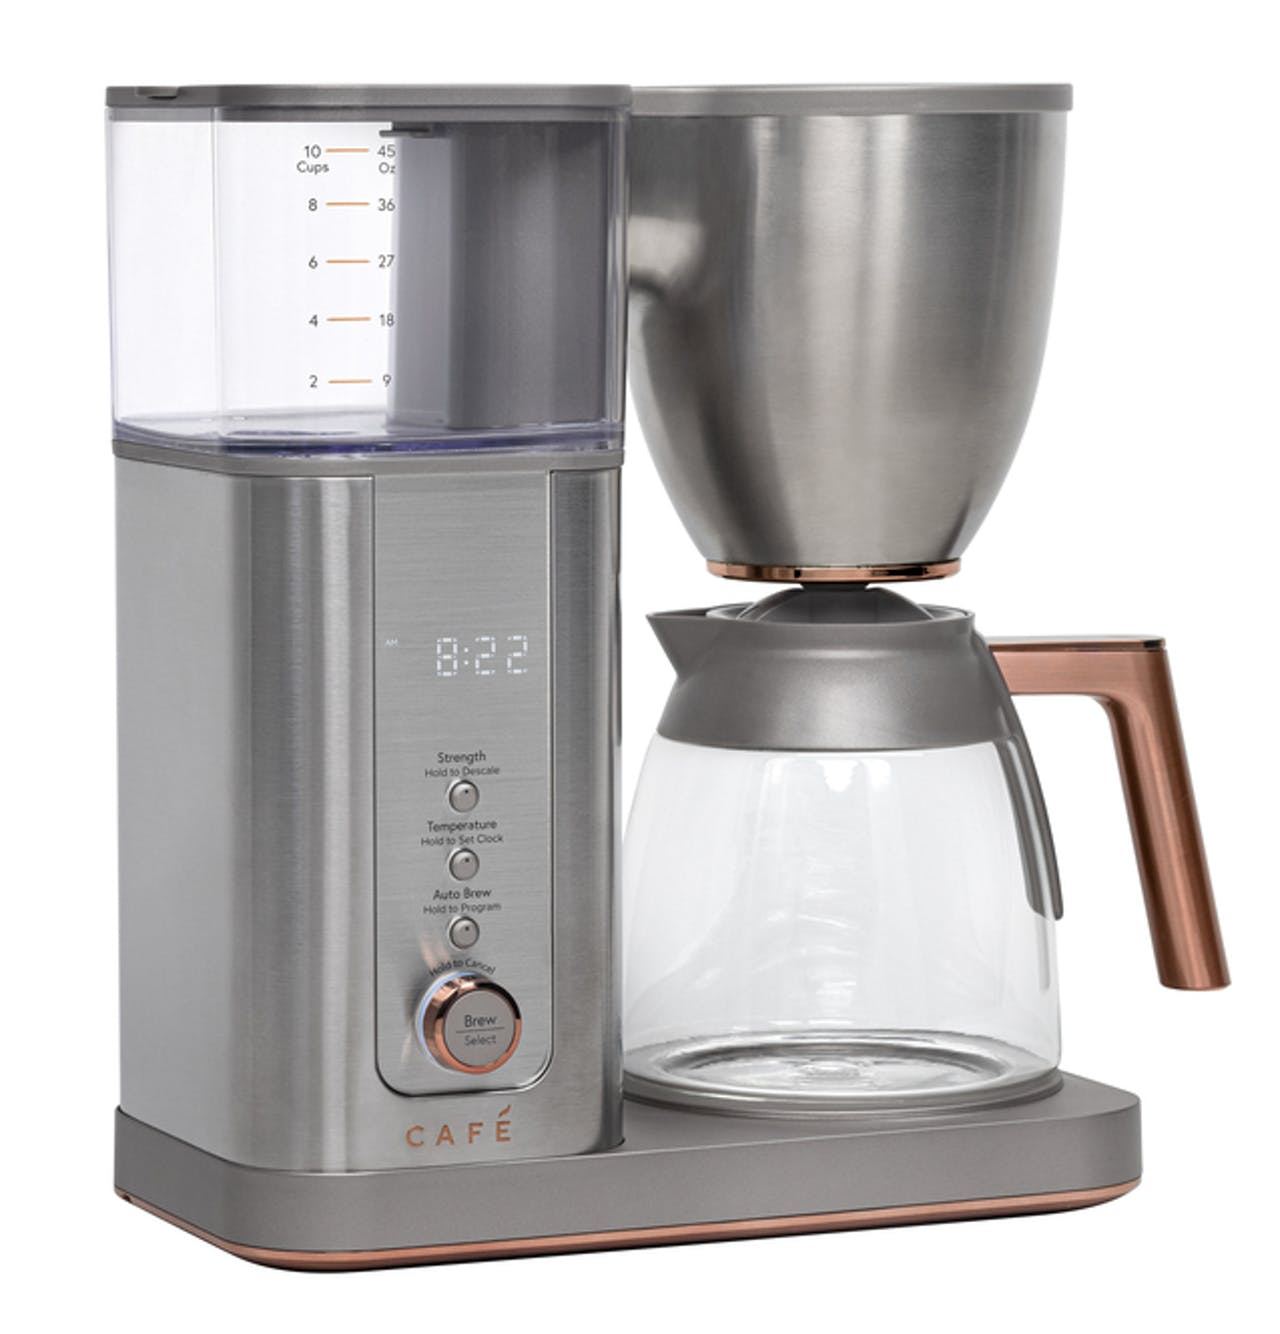 Café Specialty Drip Coffee Maker with Glass Carafe in Stainless Steel